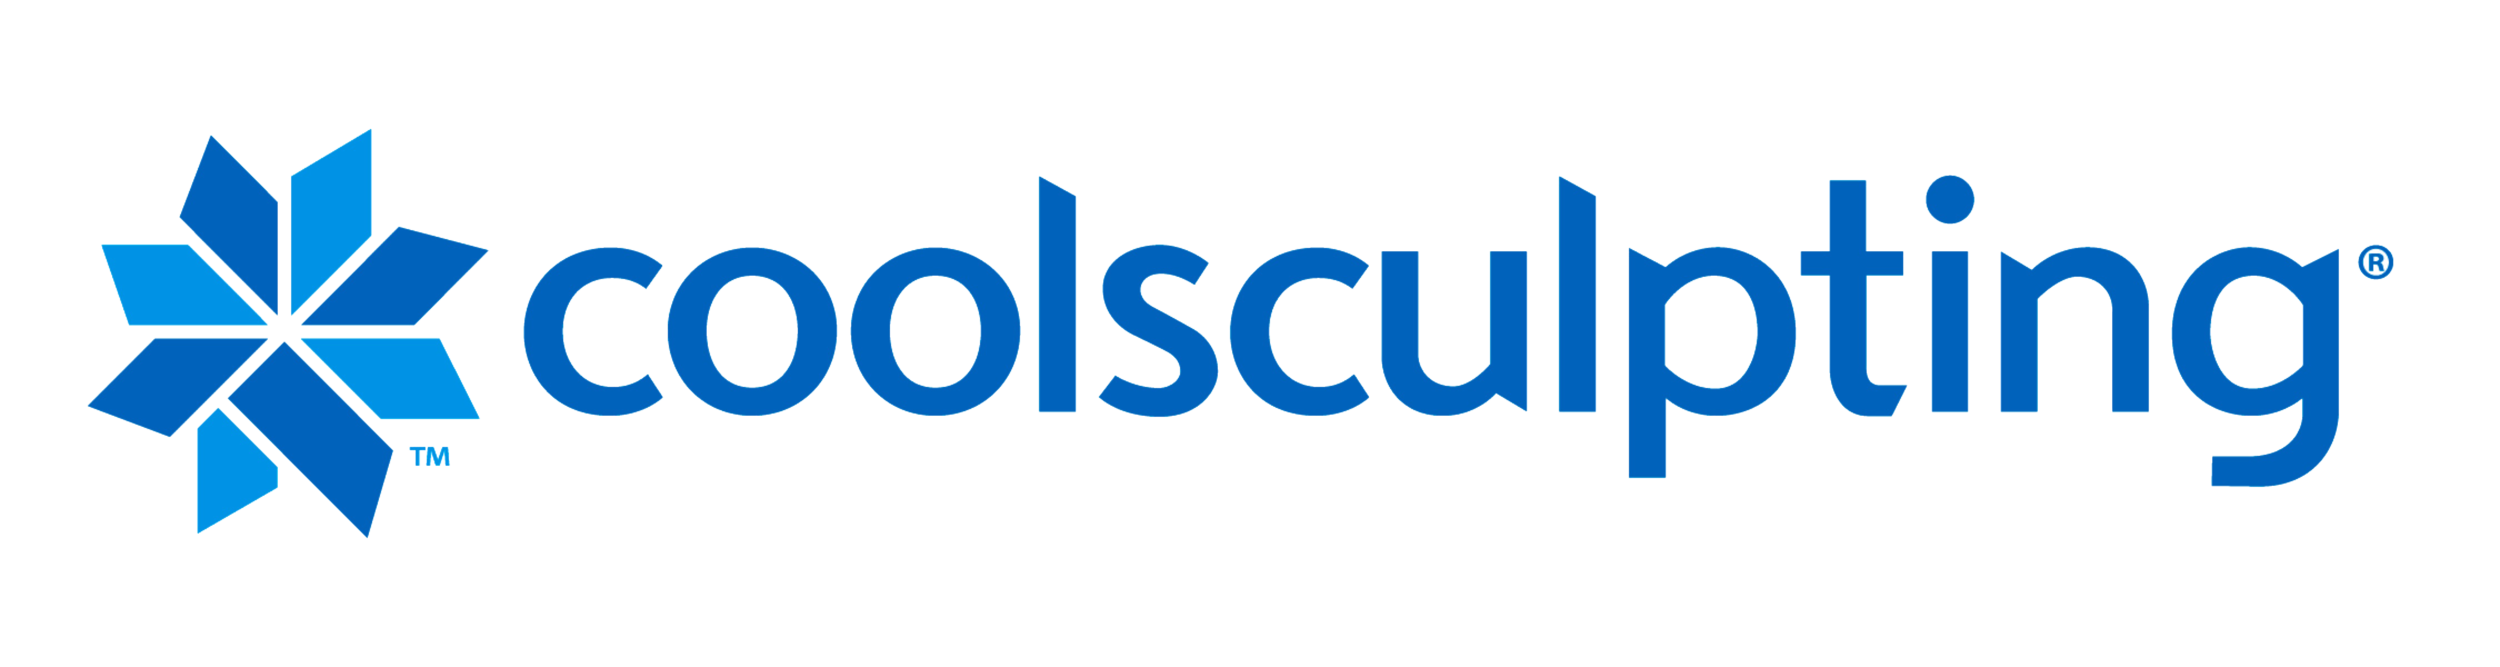 coolsculpting-logo large.png